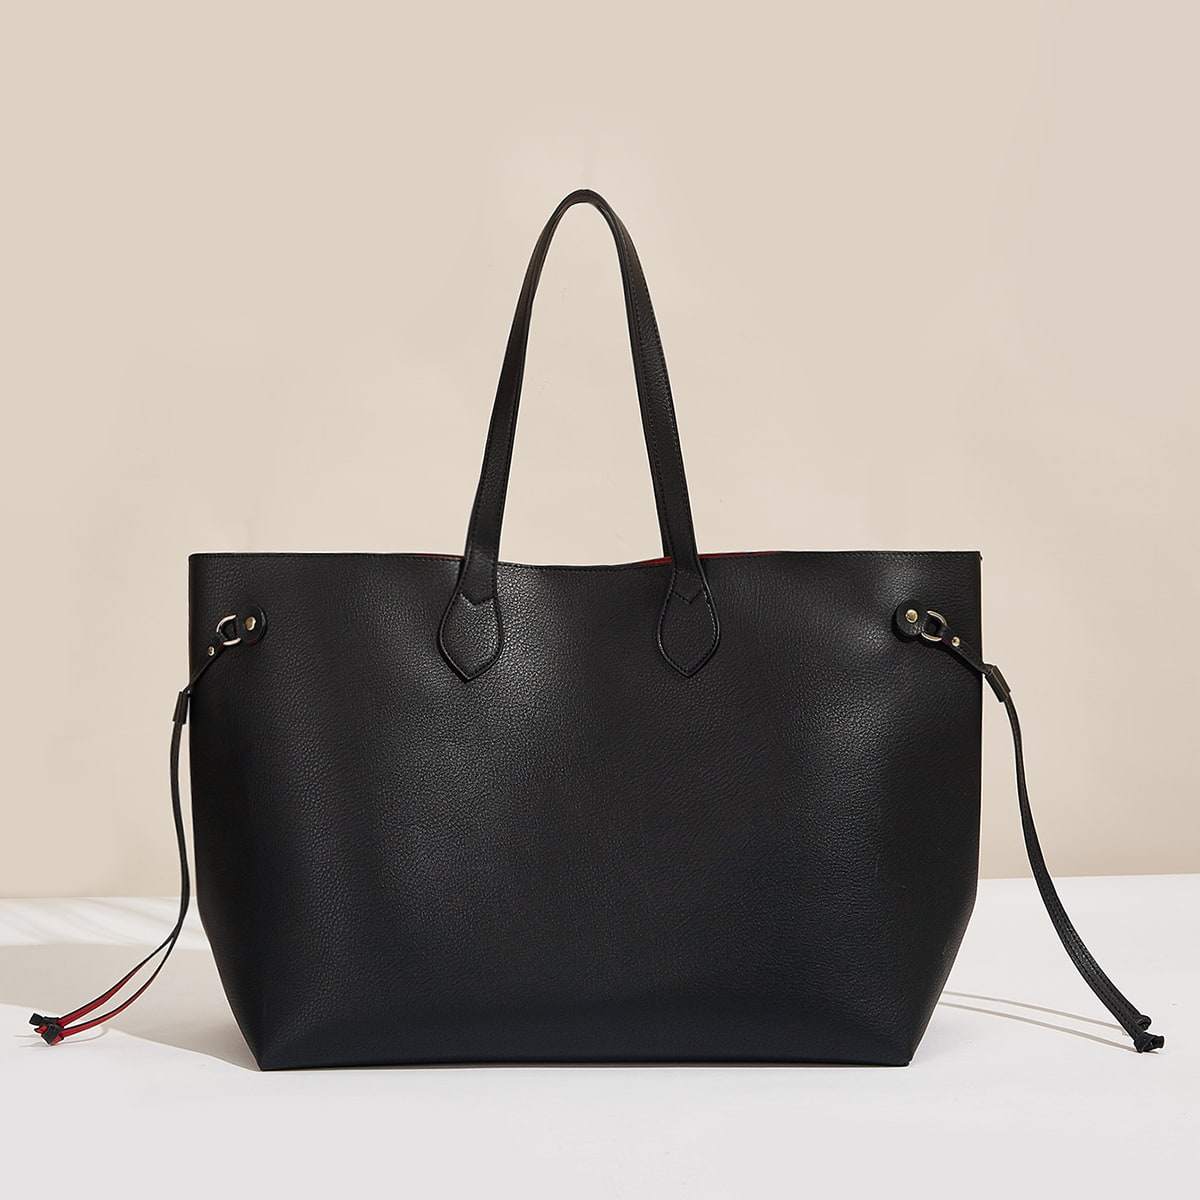 Minimalist Large Tote Bag With Purse